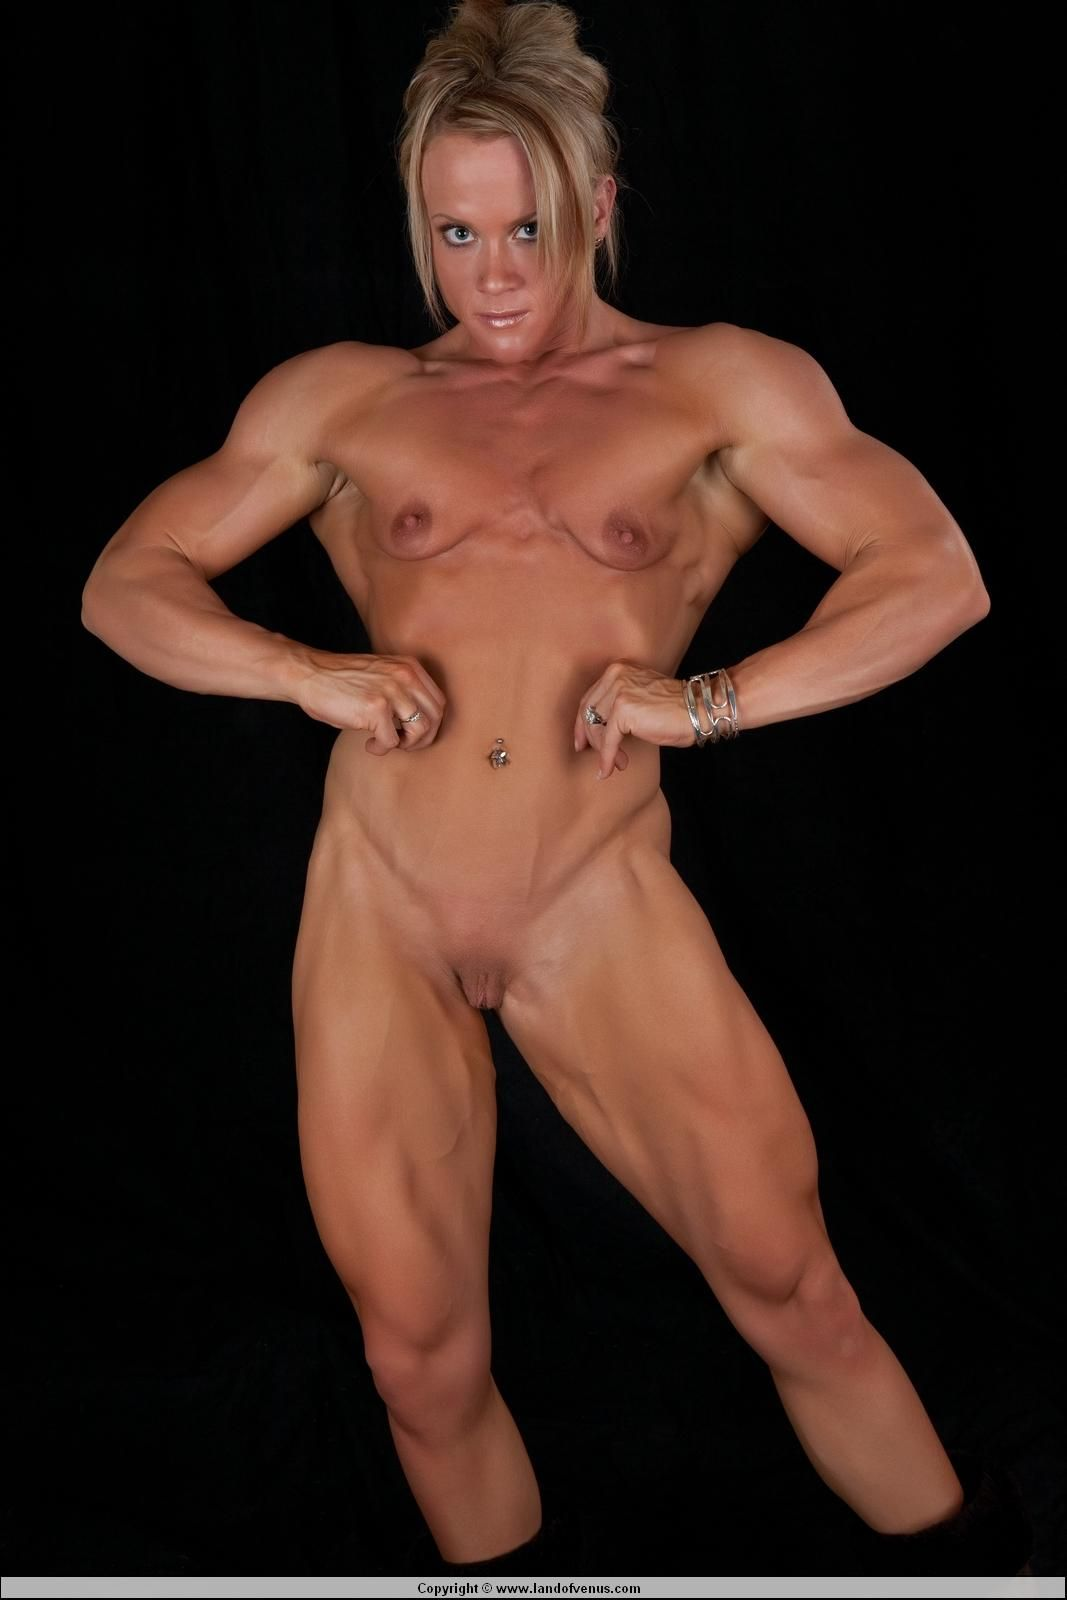 Nude female bodybuilder archive of bodybuilder sex pics